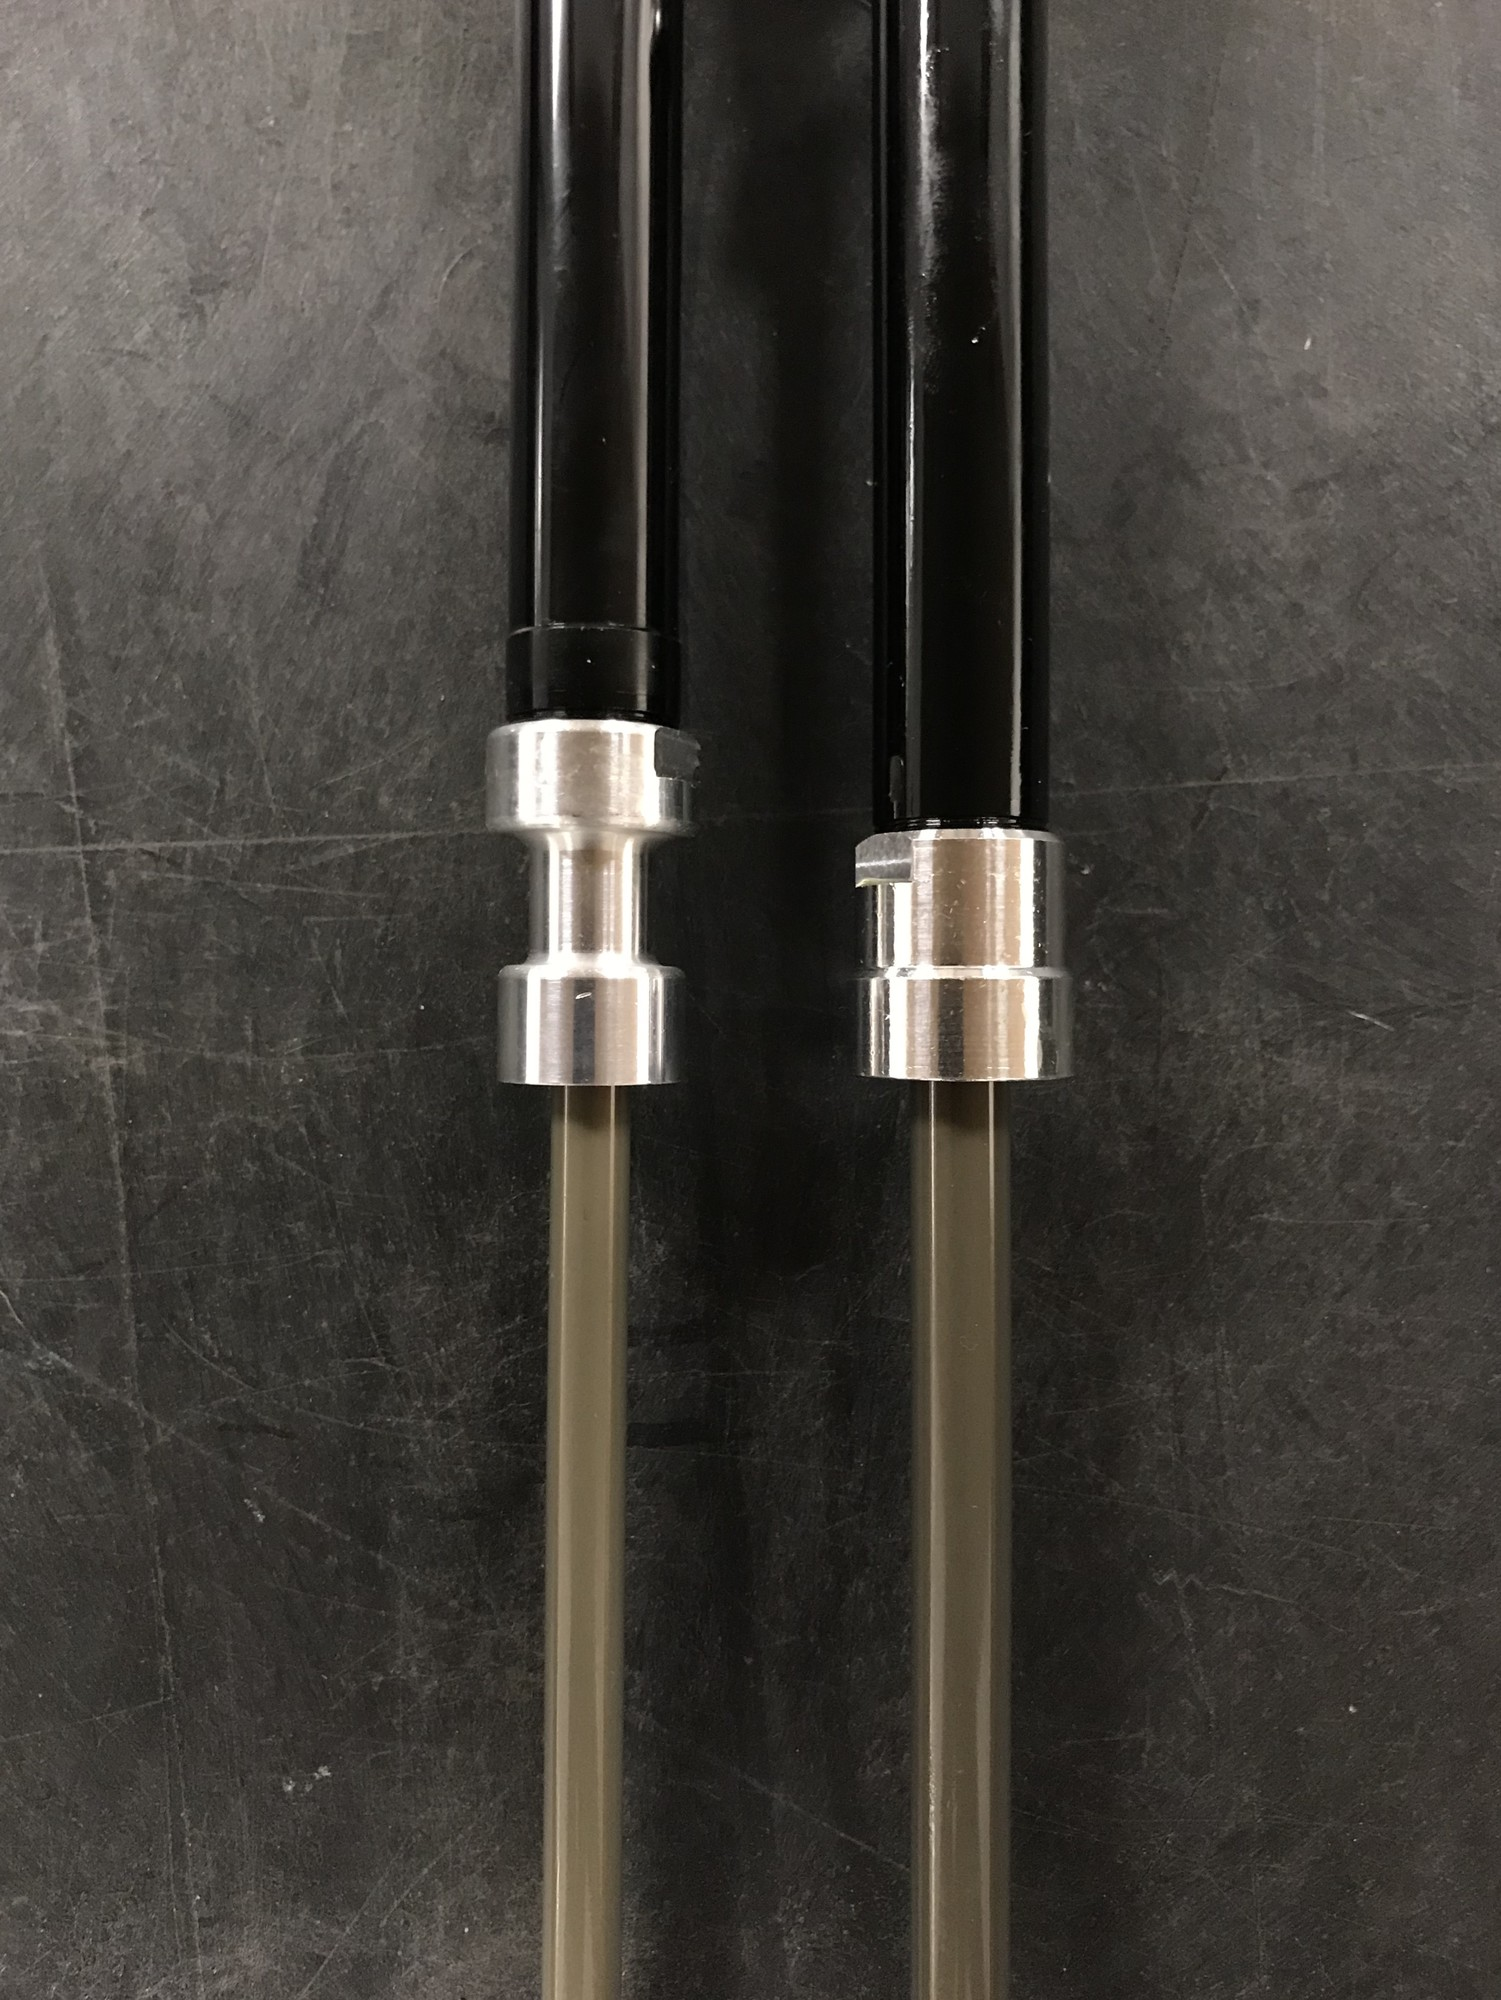 8mm shaft compared to the prior model's 10mm shaft